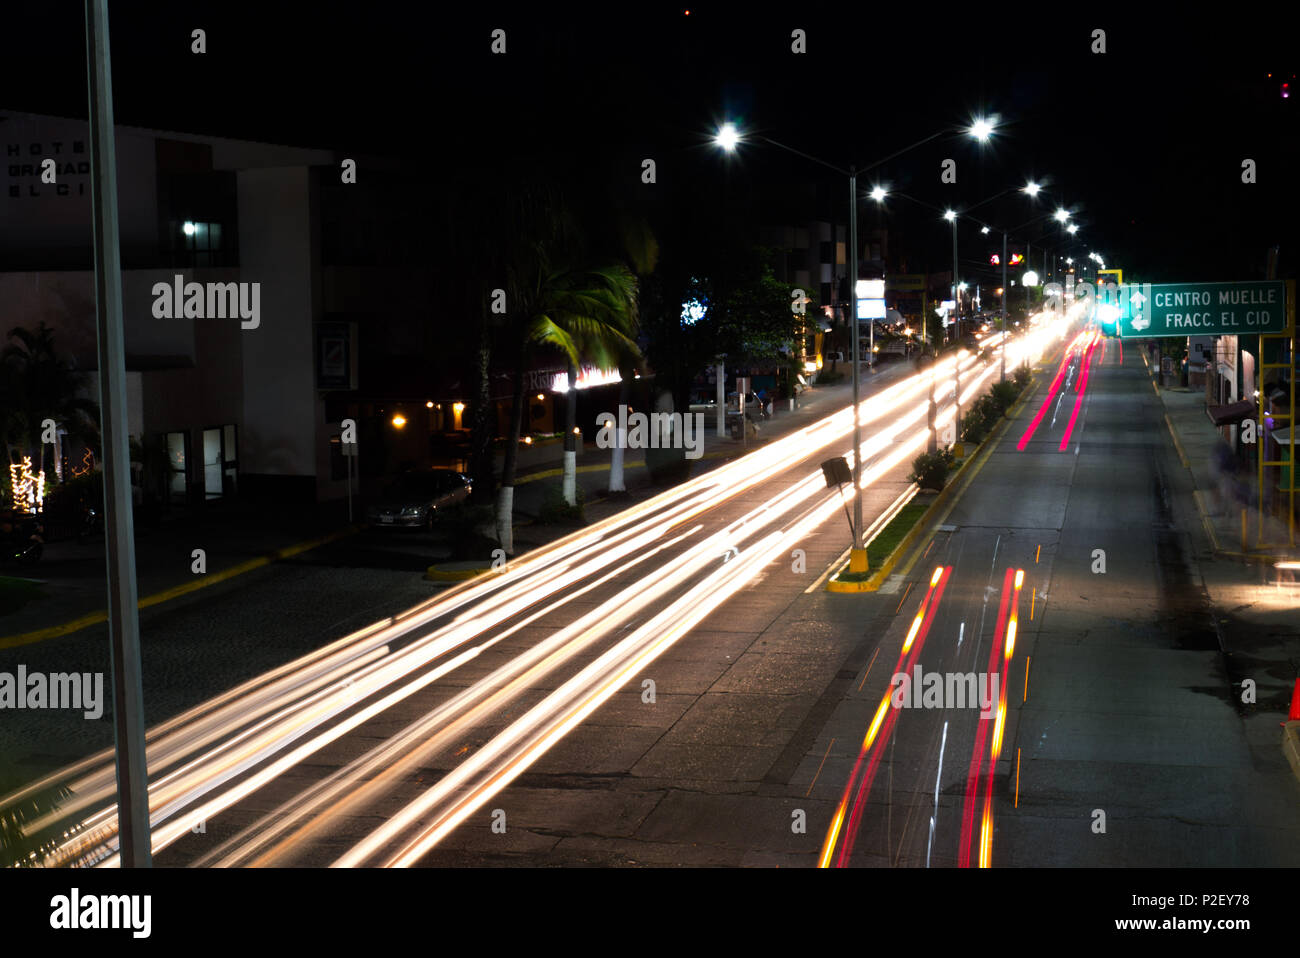 Traffic passing by at night - Stock Image